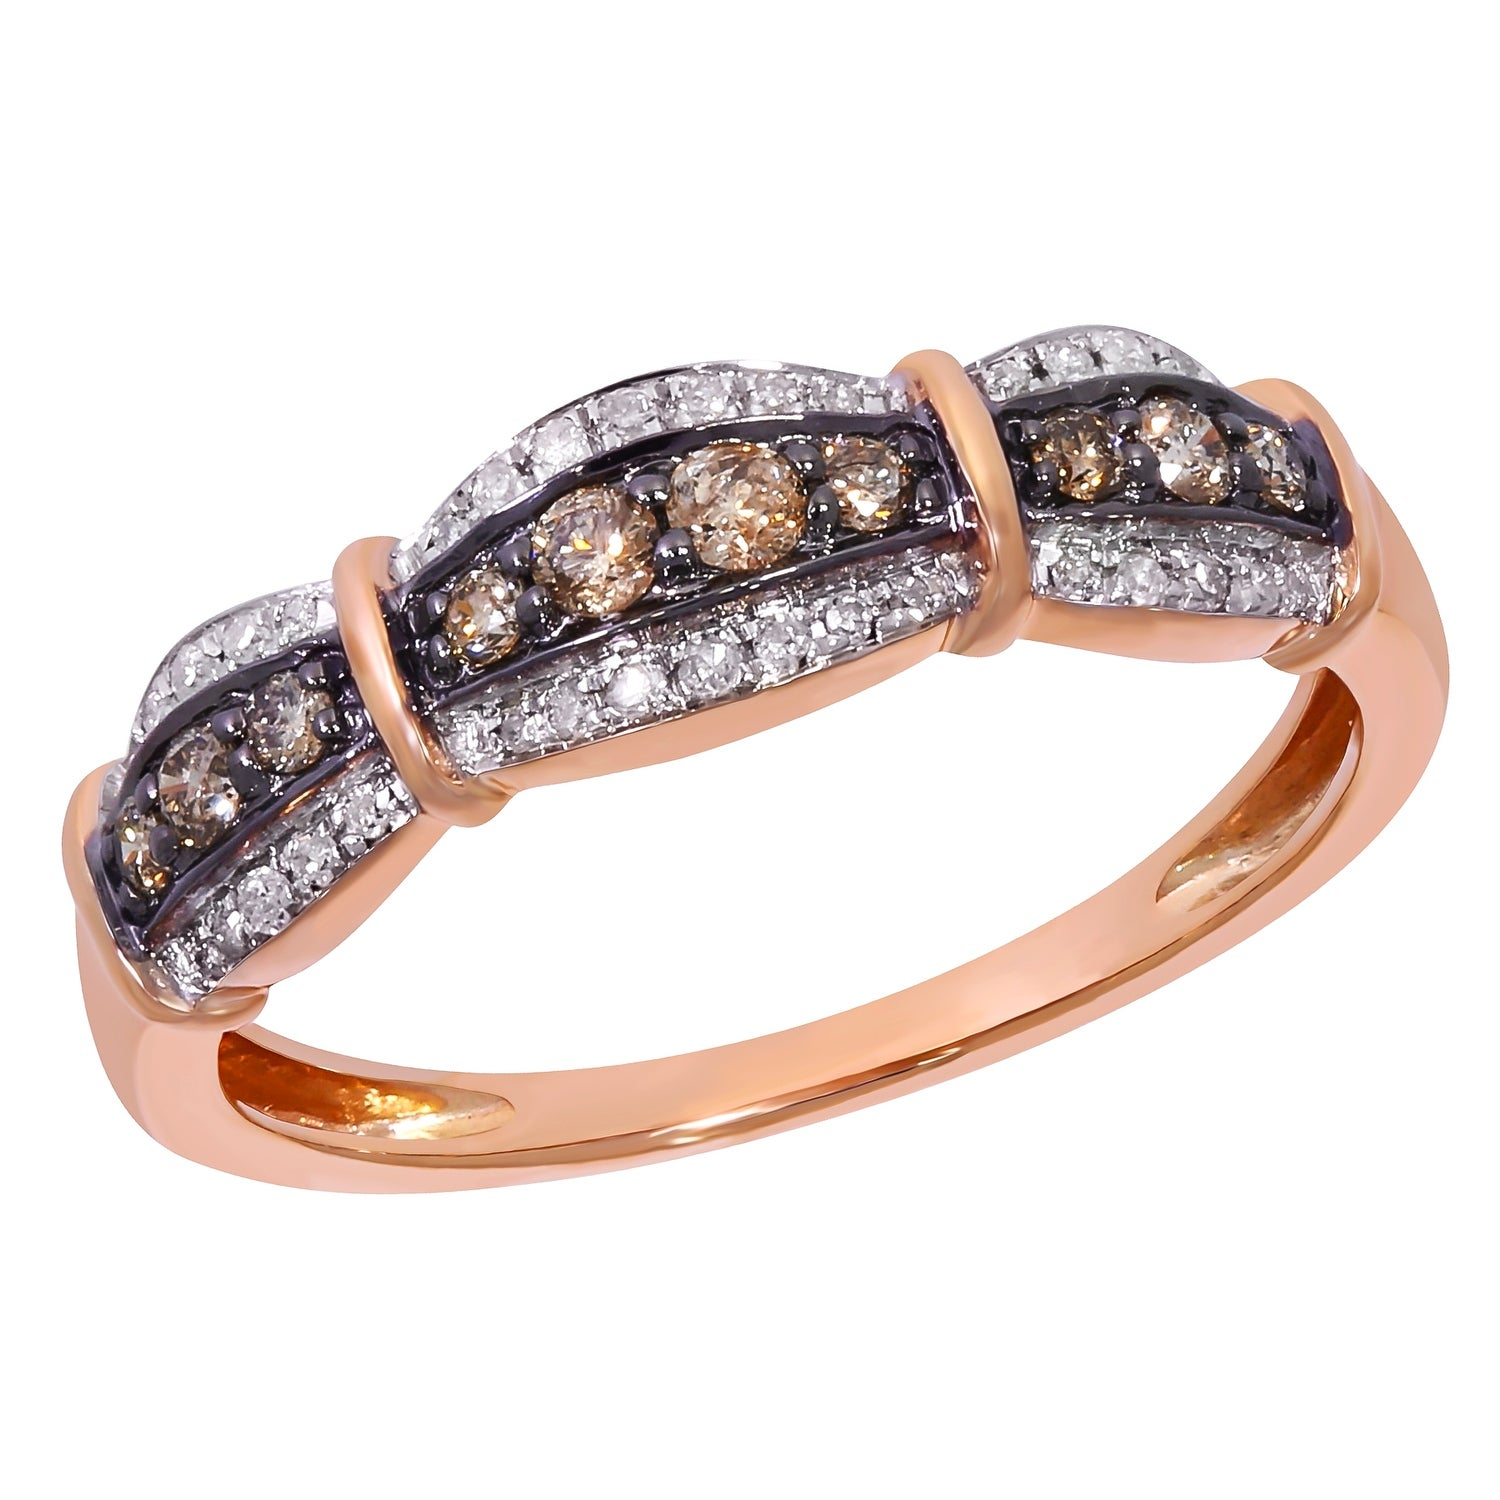 Prism Jewel 0.31ct Round Cut Brown Color Diamond with Diamond Anniversary Ring - White G-H - Thumbnail 0